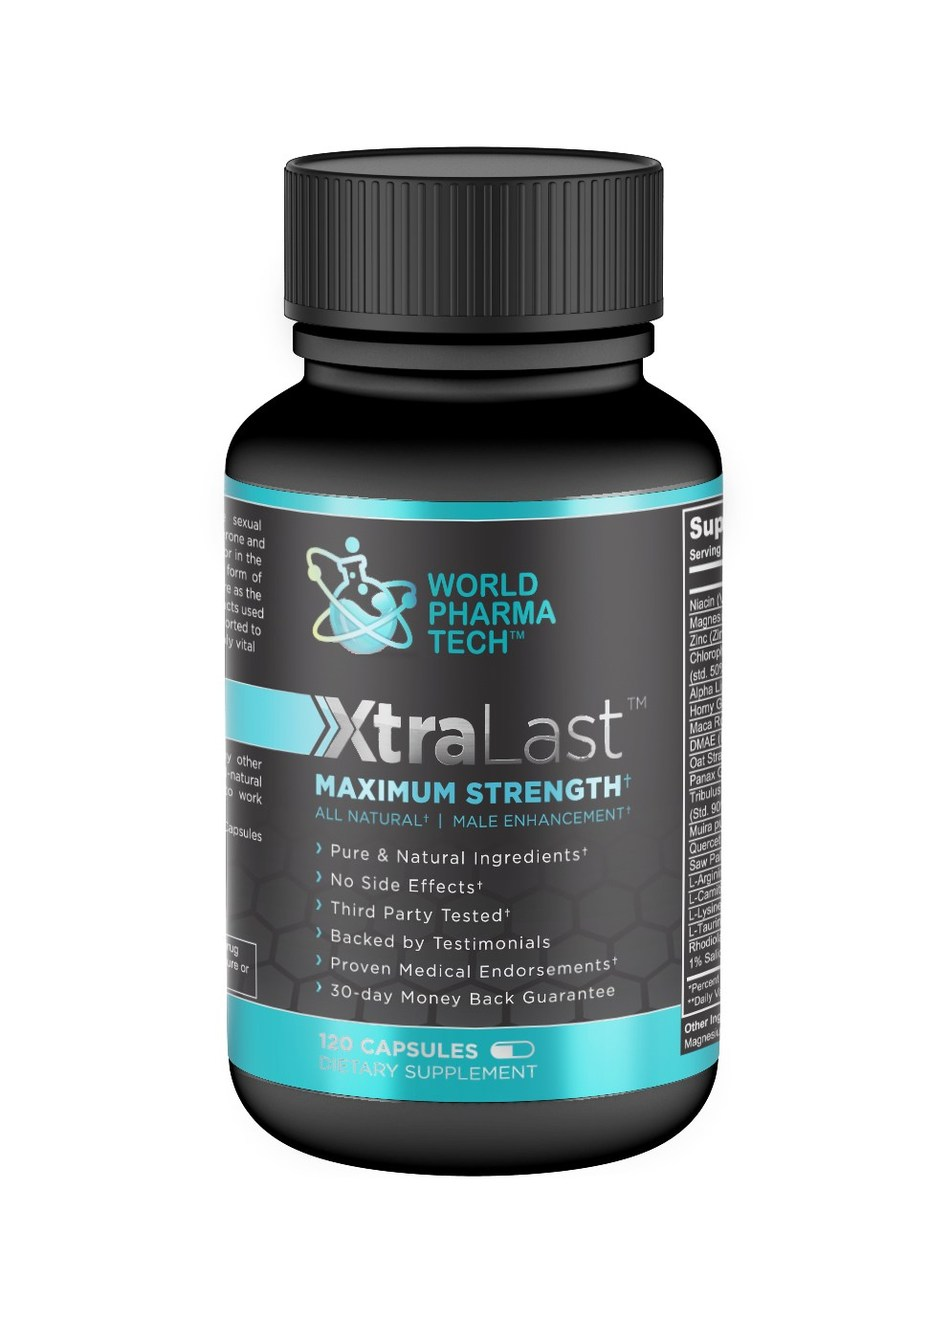 This year, a California-based biomedical innovation company will roll out a holistic male enhancement supplement, XtraLast®, which blends known traditional remedies with modern technology.